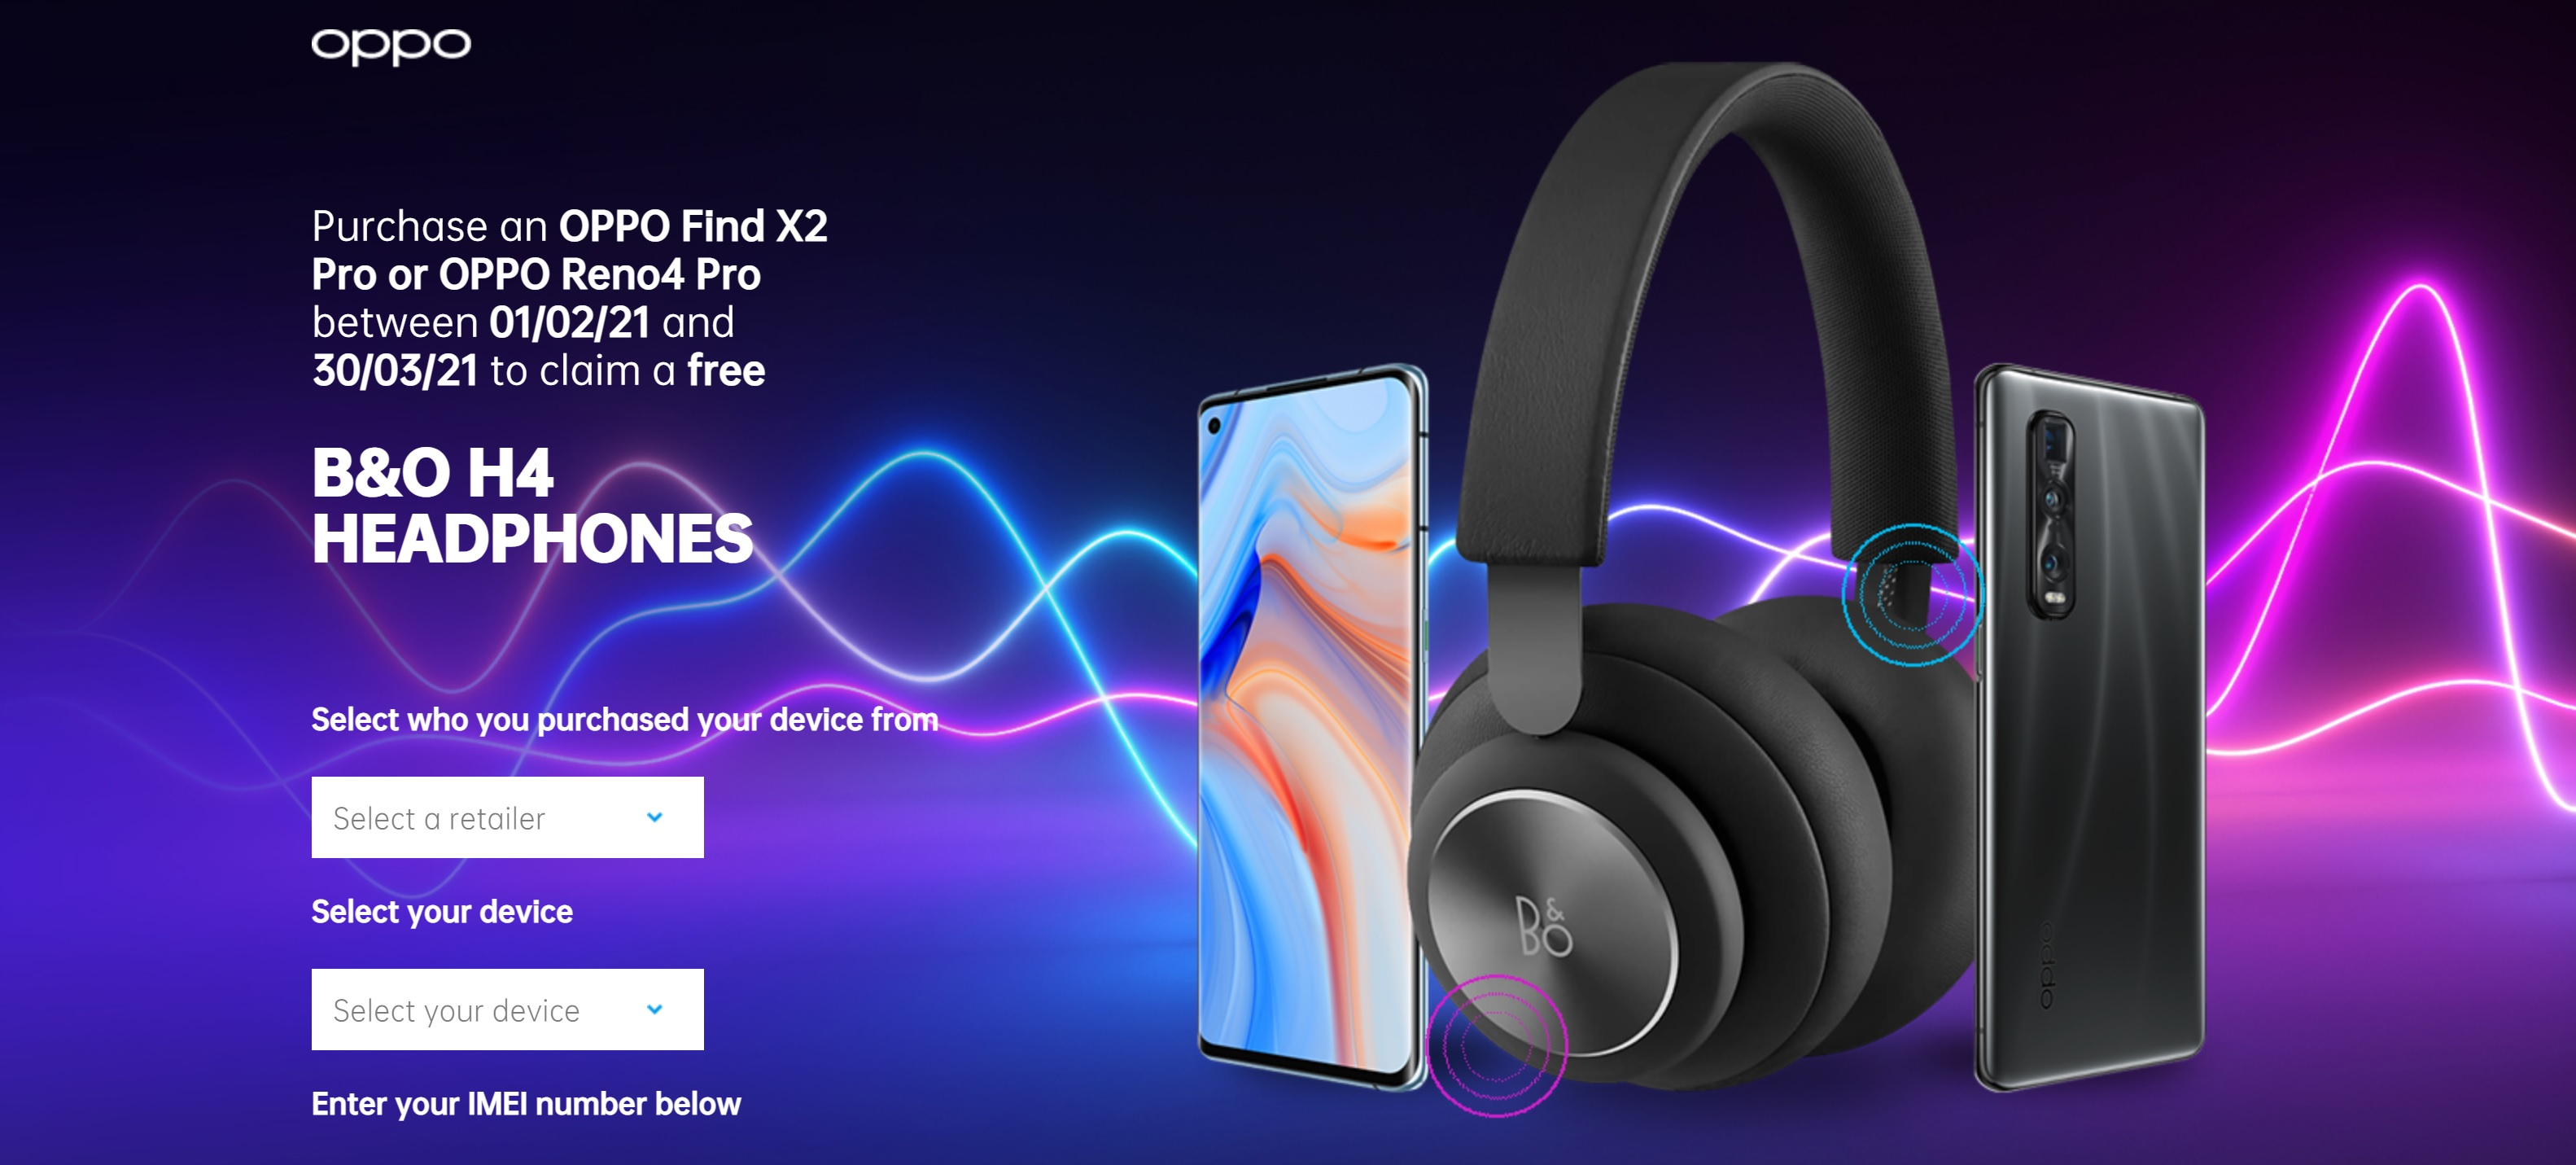 Claim Free Bang and Olufsen H4 Headphones with Oppo Find X2 Pro Deals